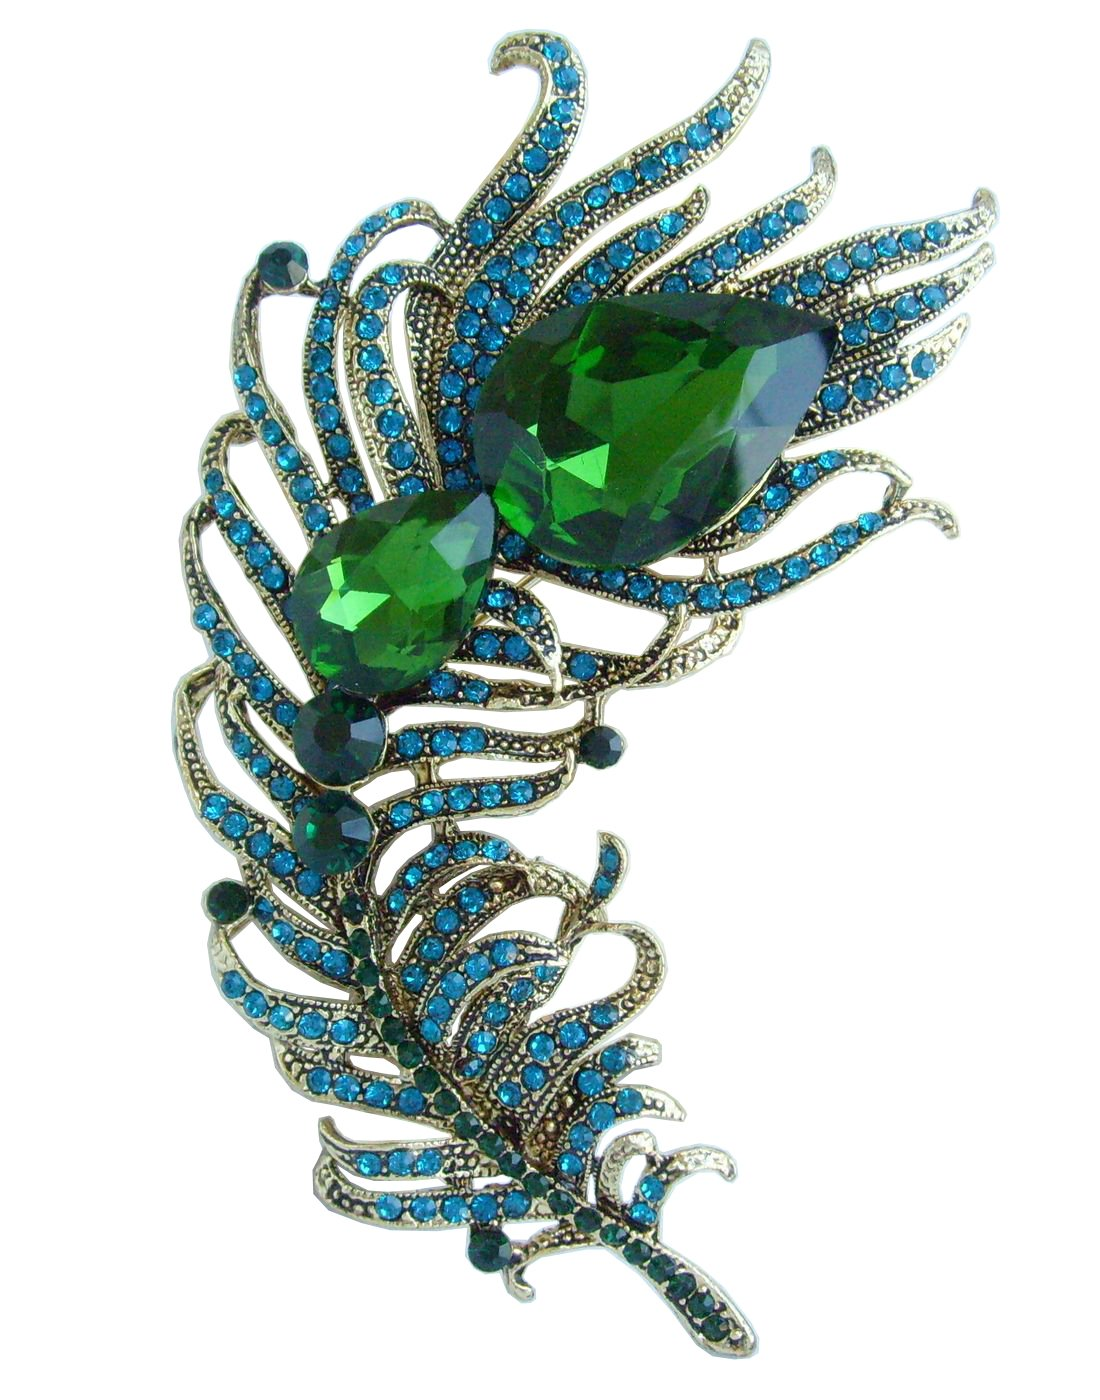 4.33'' Rhinestone Crystal Peacock Feather Brooch Pin Pendant BZ5038 (Gold-Tone Green)